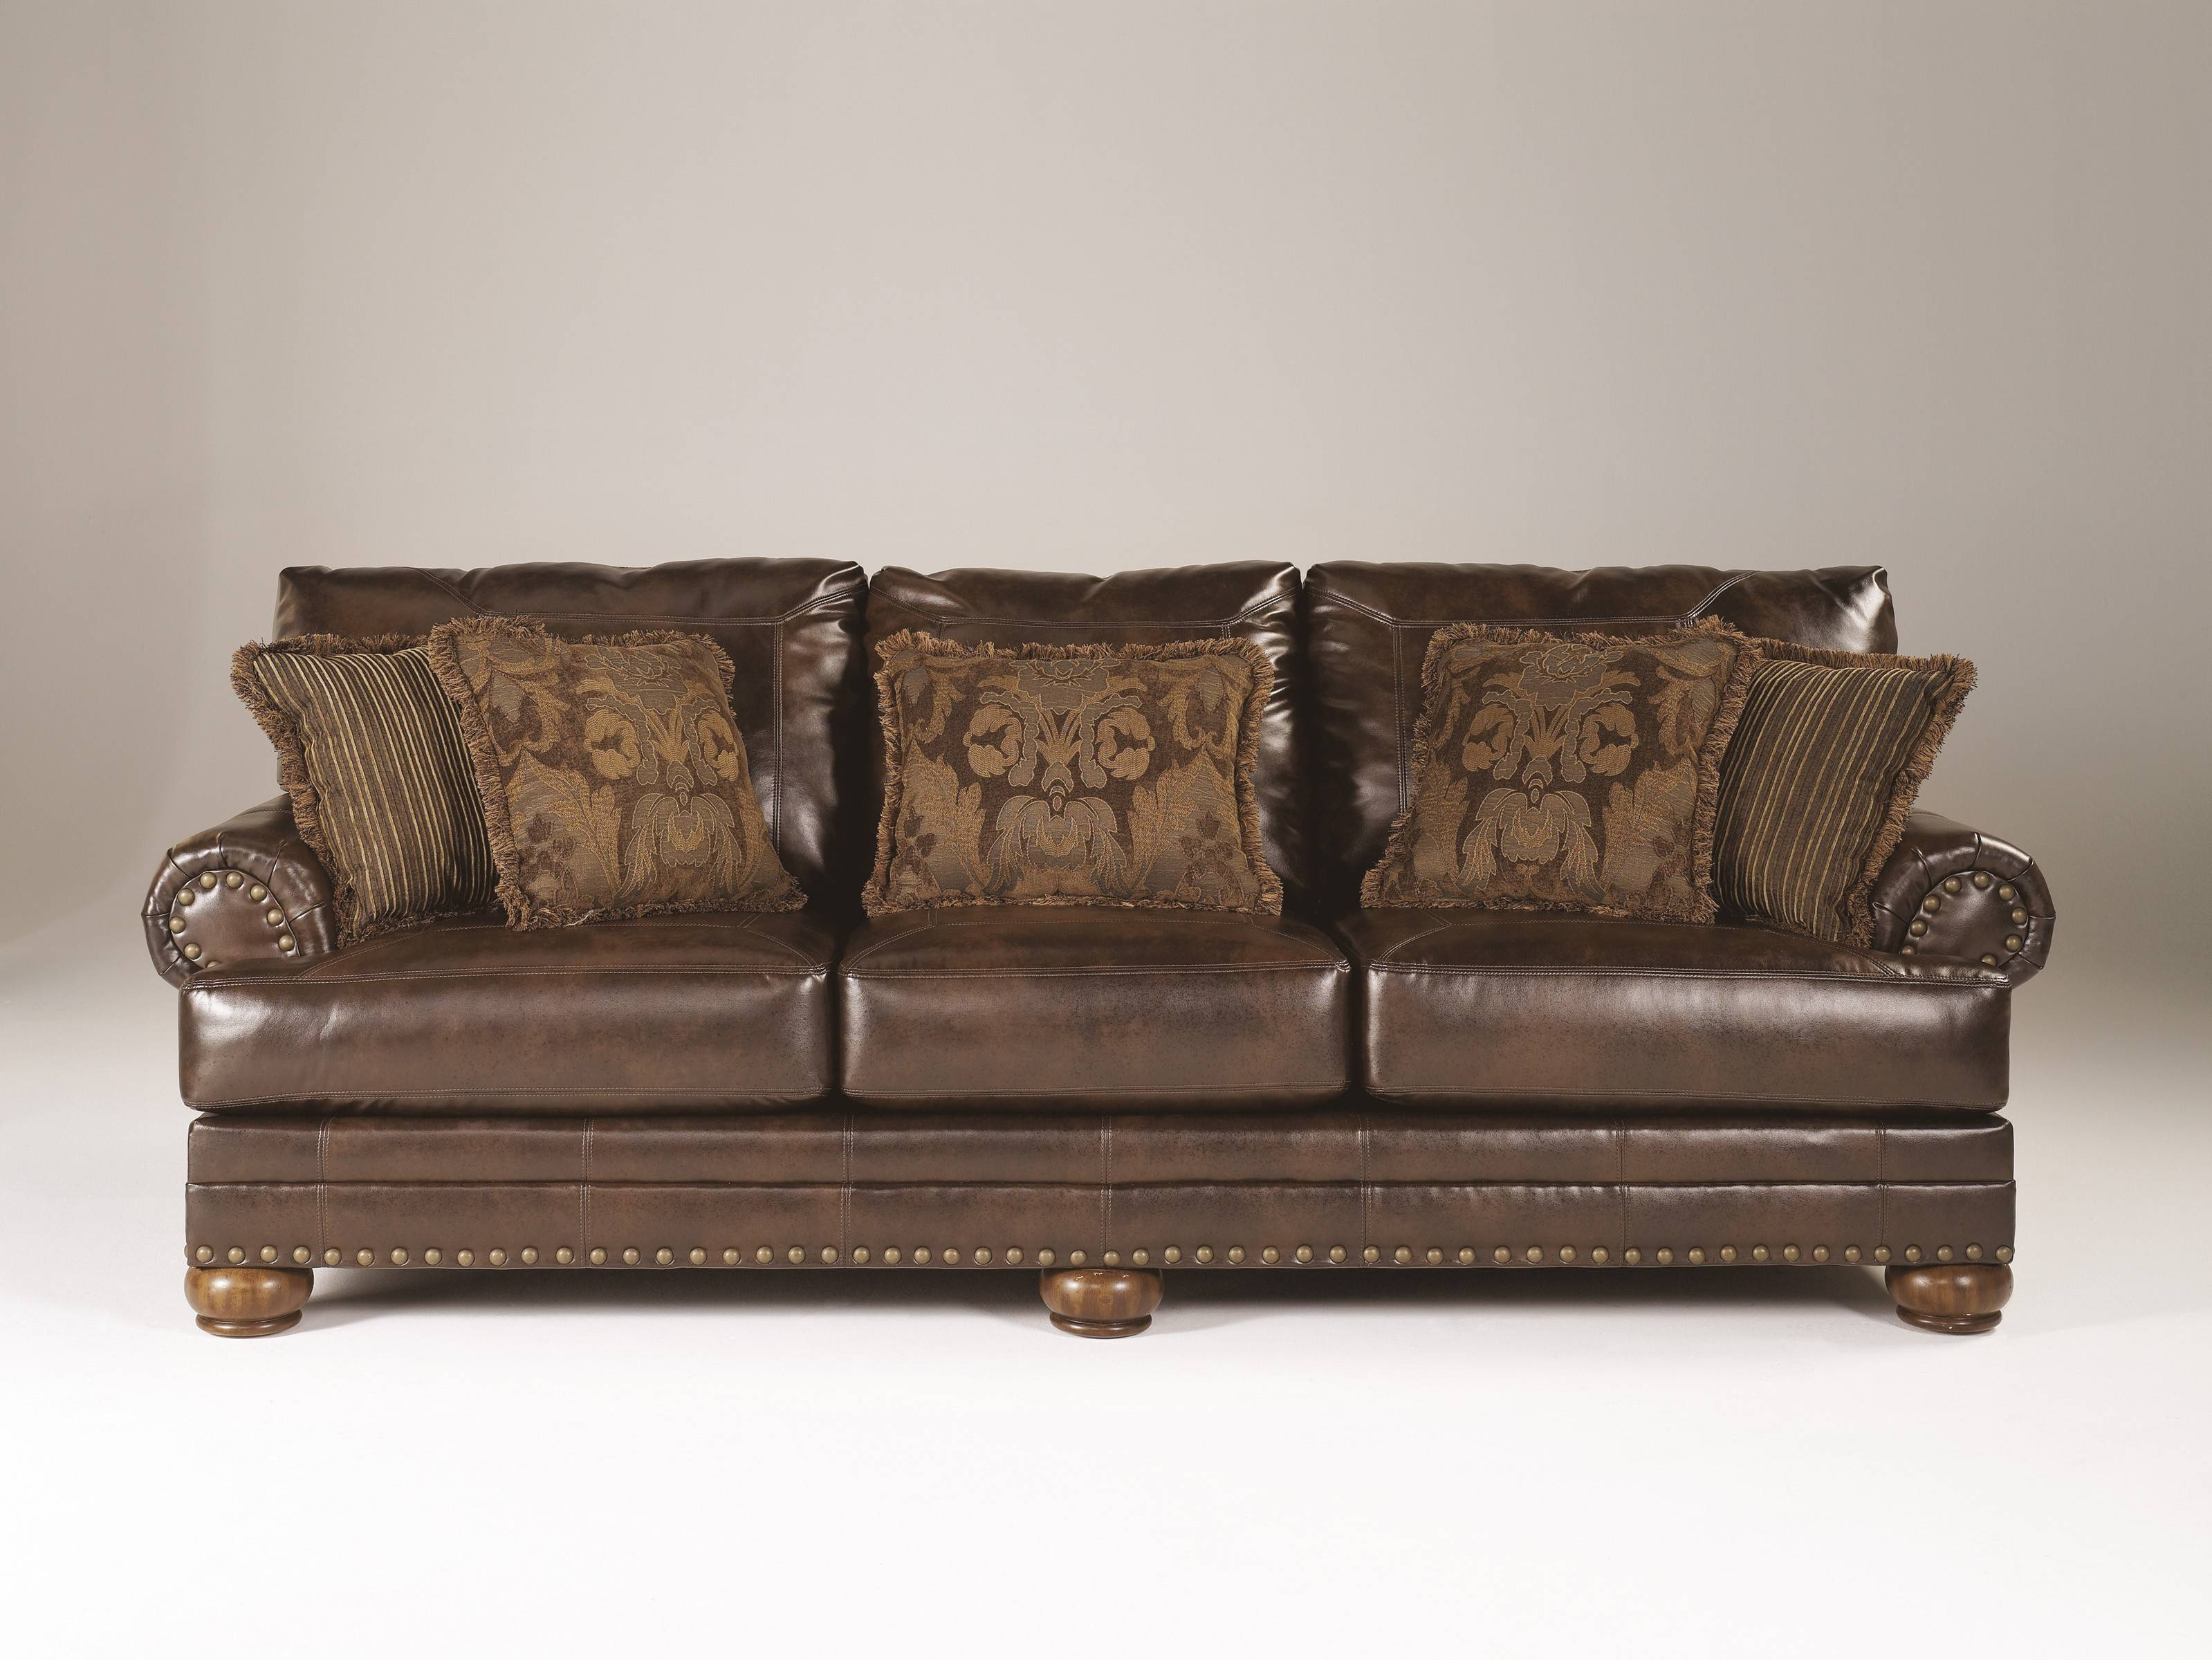 Ashley Brown Leather Durablend Antique Chair 1/2Ashley pertaining to Antique Sofa Chairs (Image 5 of 30)